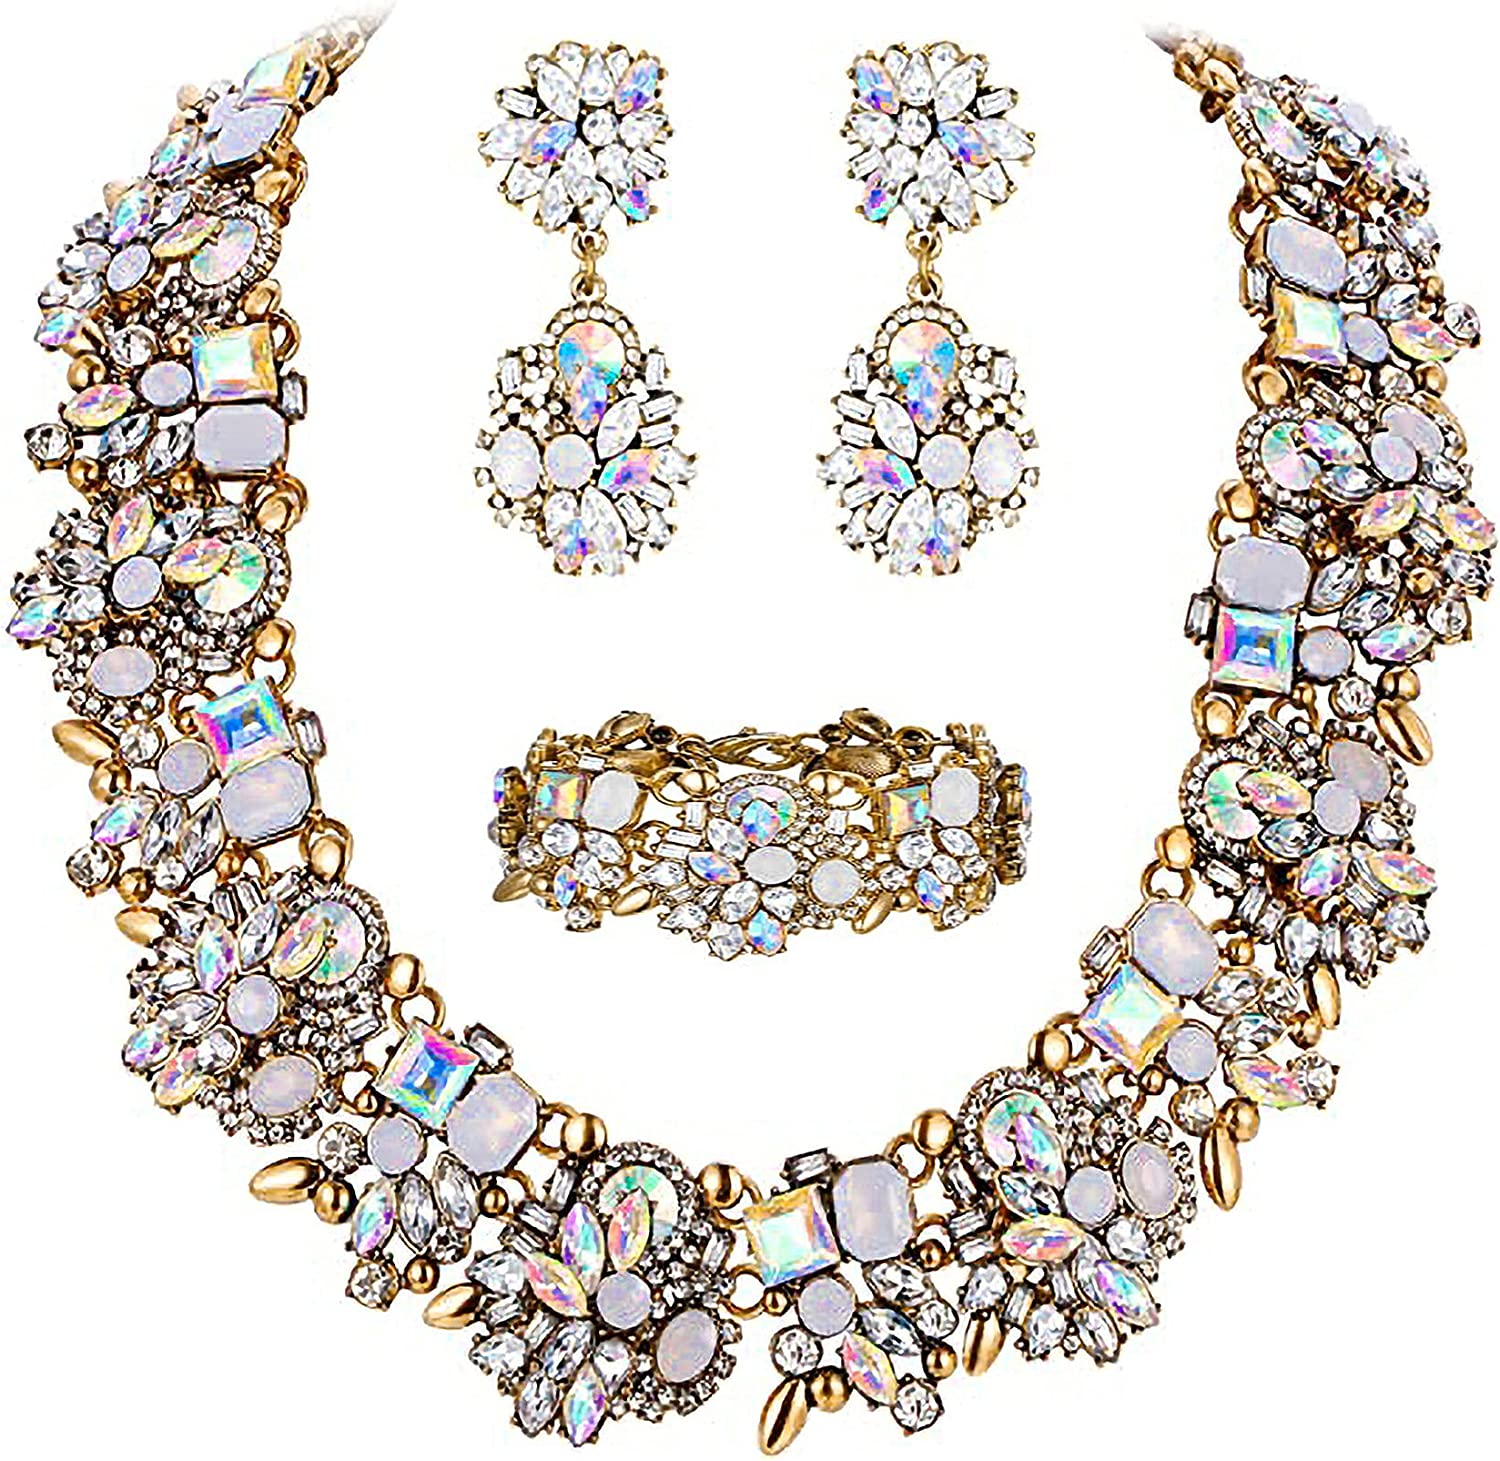 NABROJ Statement Necklaces Set for Women with Crystals Gold Chain Bib Collar Necklace Wedding Jewelry Accessory 8 Colors